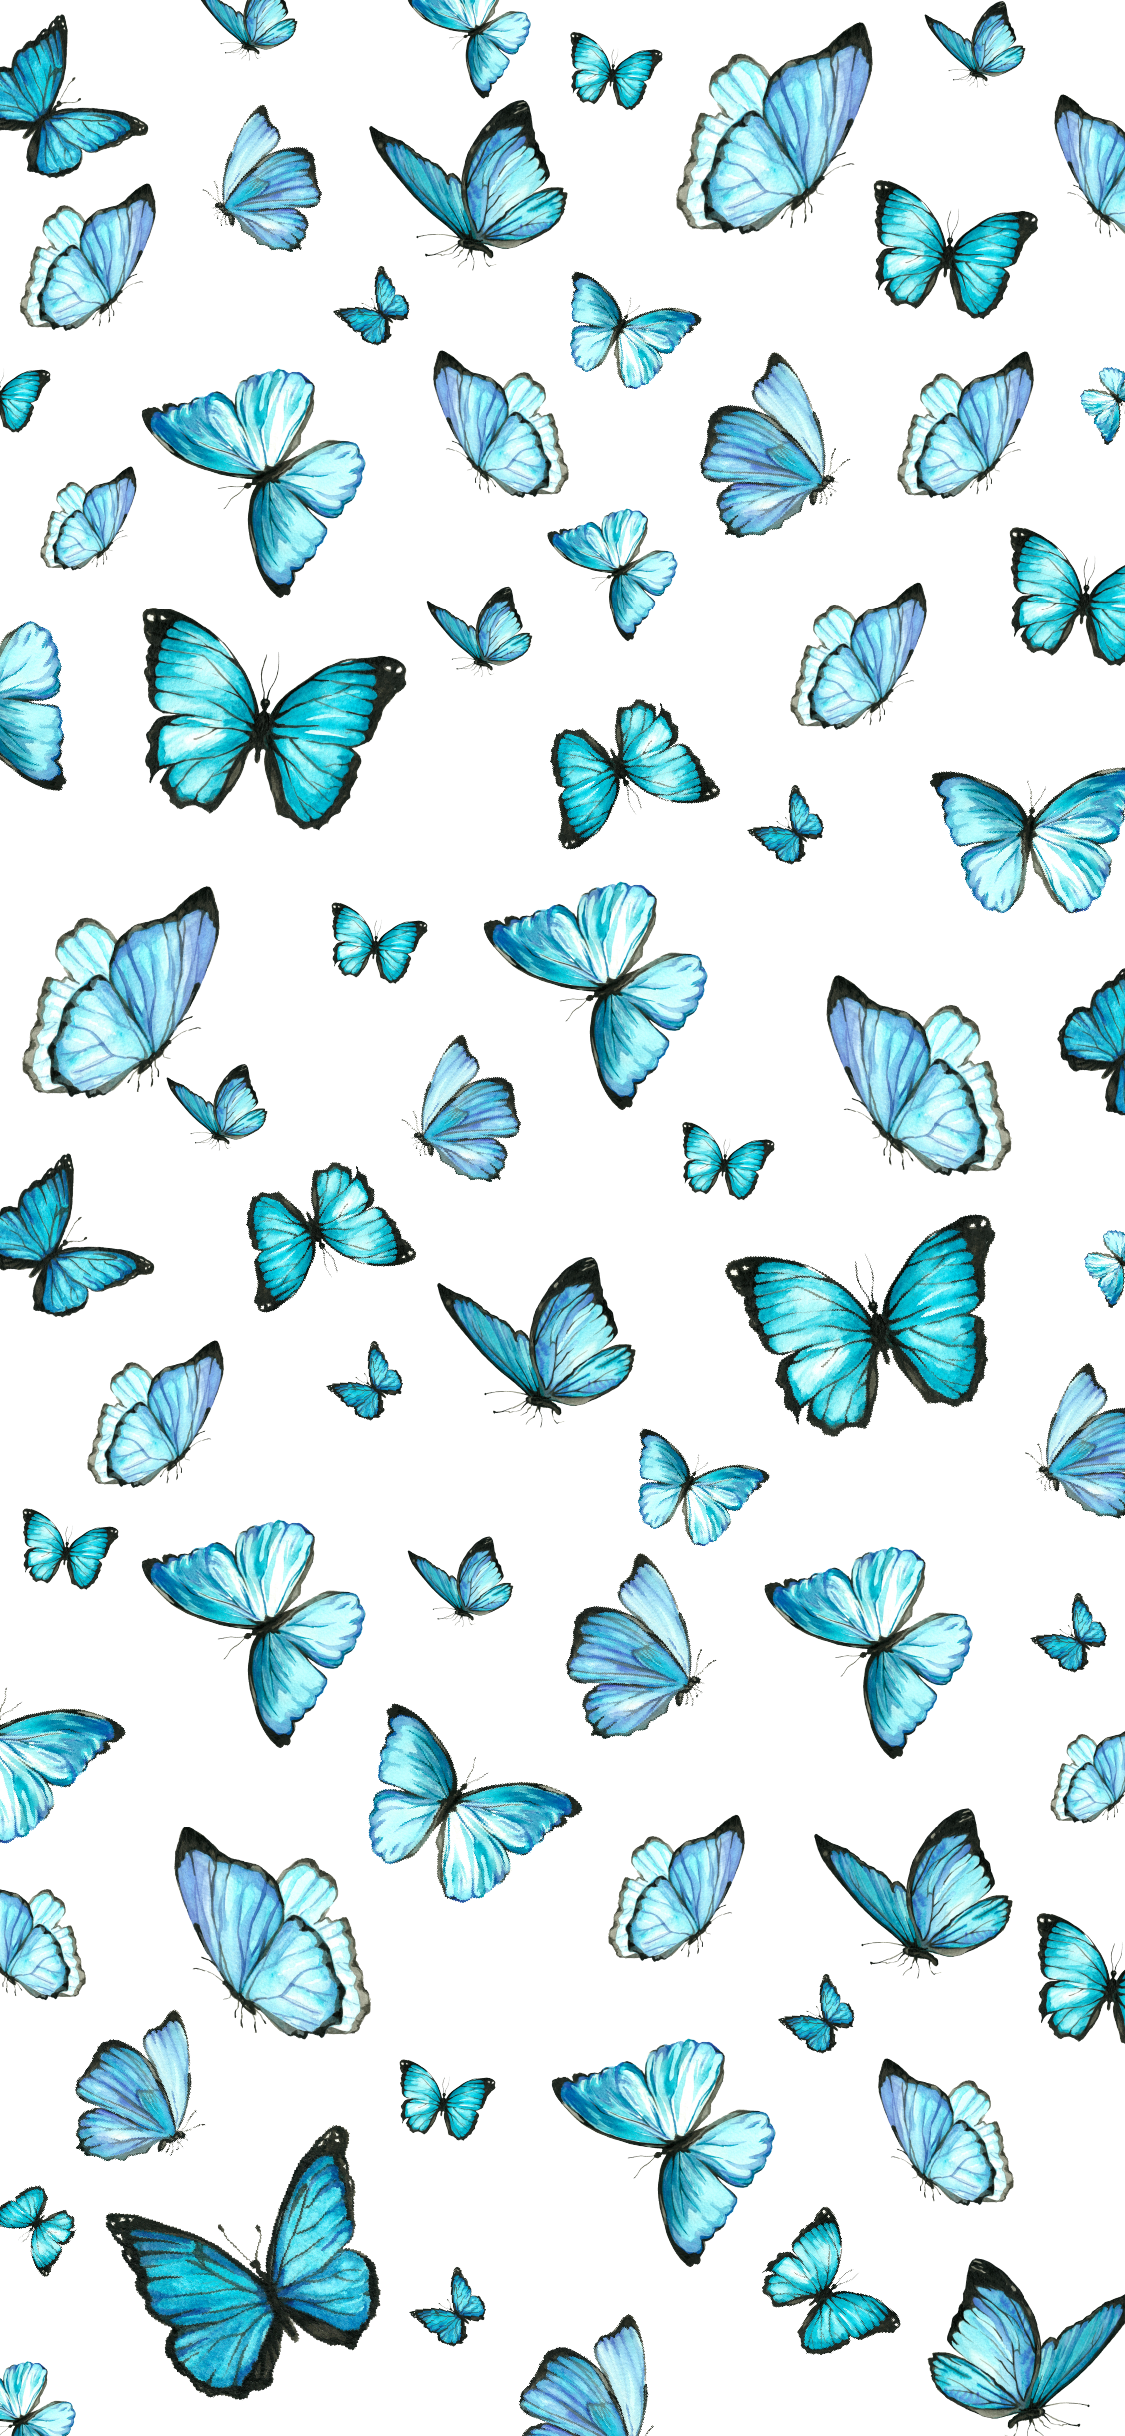 Iphone Wallpapers For Spring 2020 Butterfly Wallpaper Iphone Blue Wallpaper Iphone Cute Patterns Wallpaper